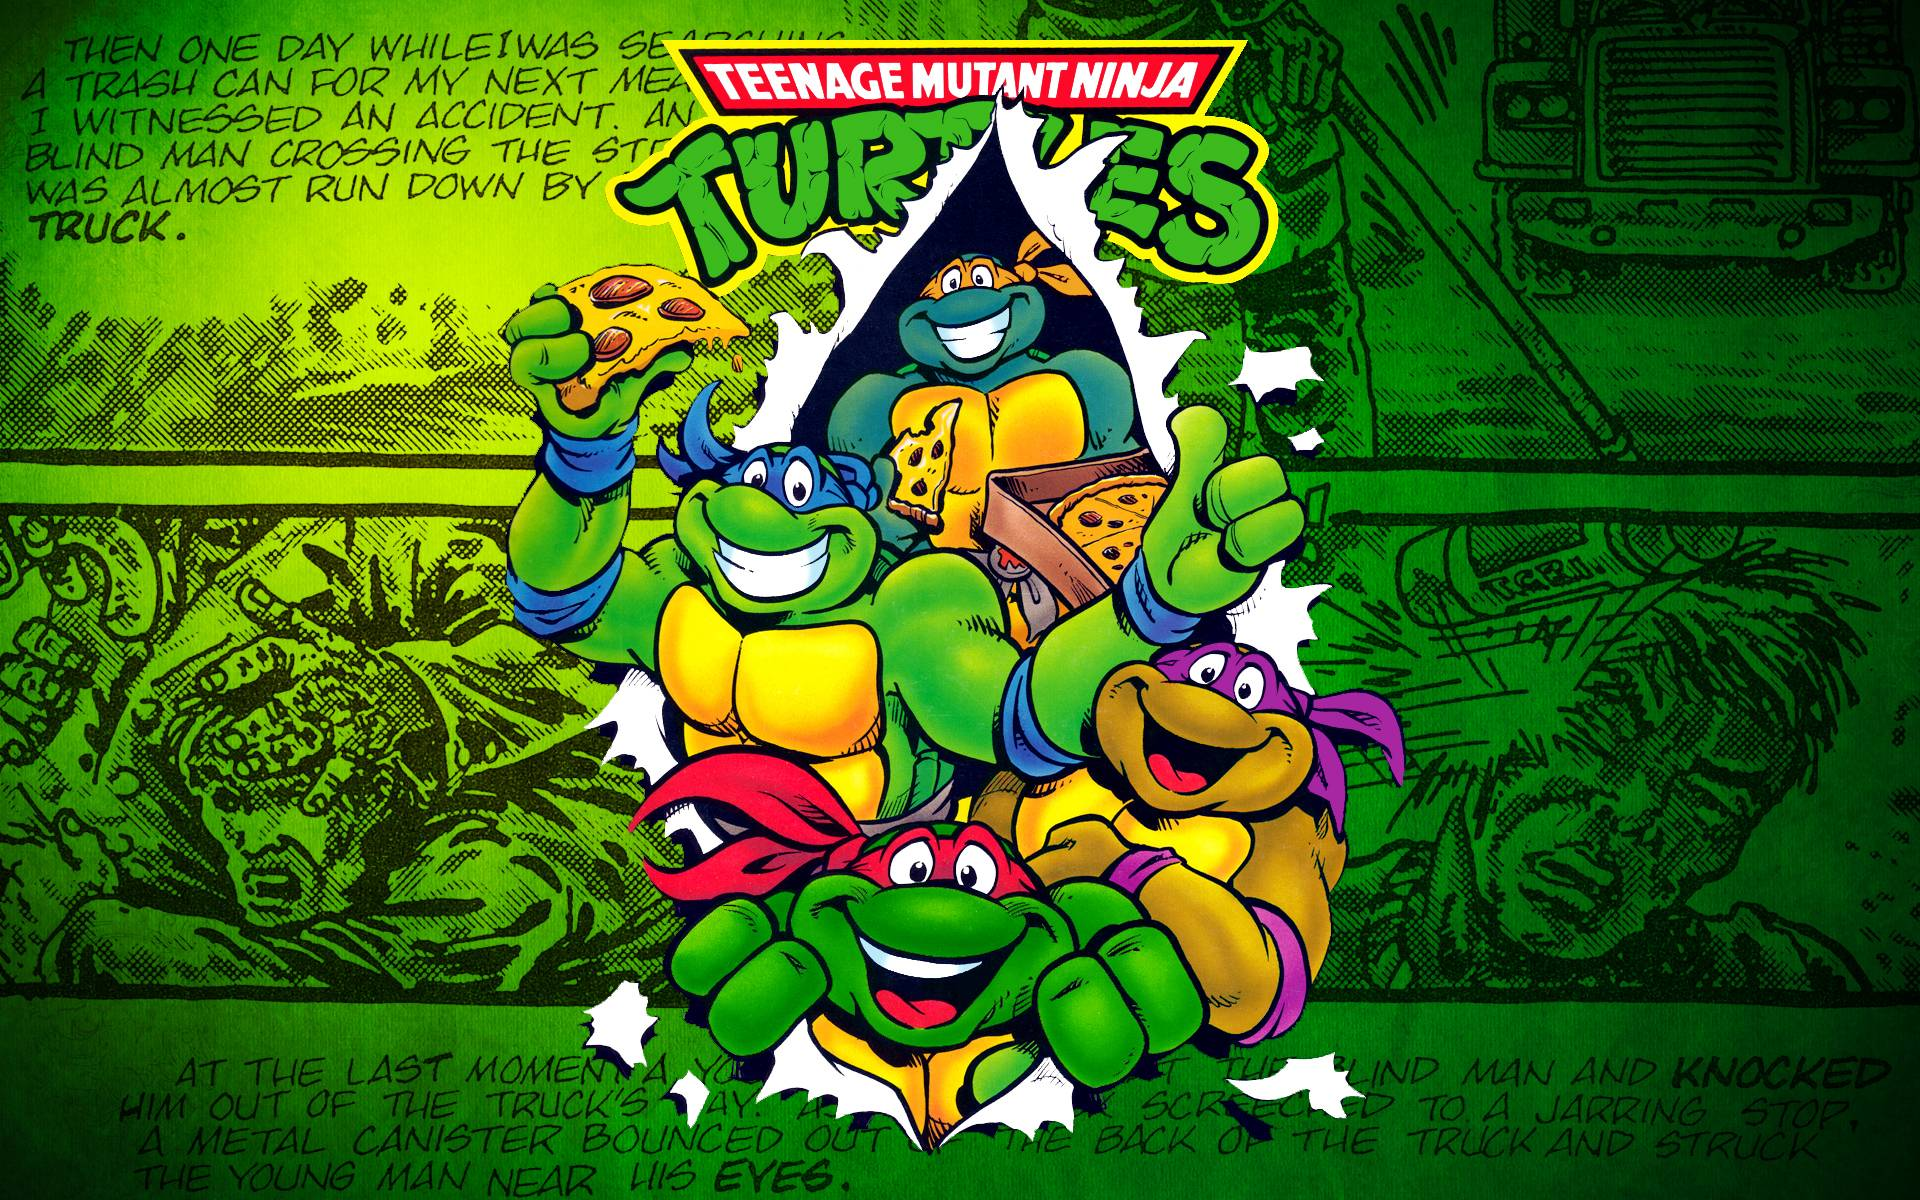 ninja turtles wallpapers - wallpaper cave